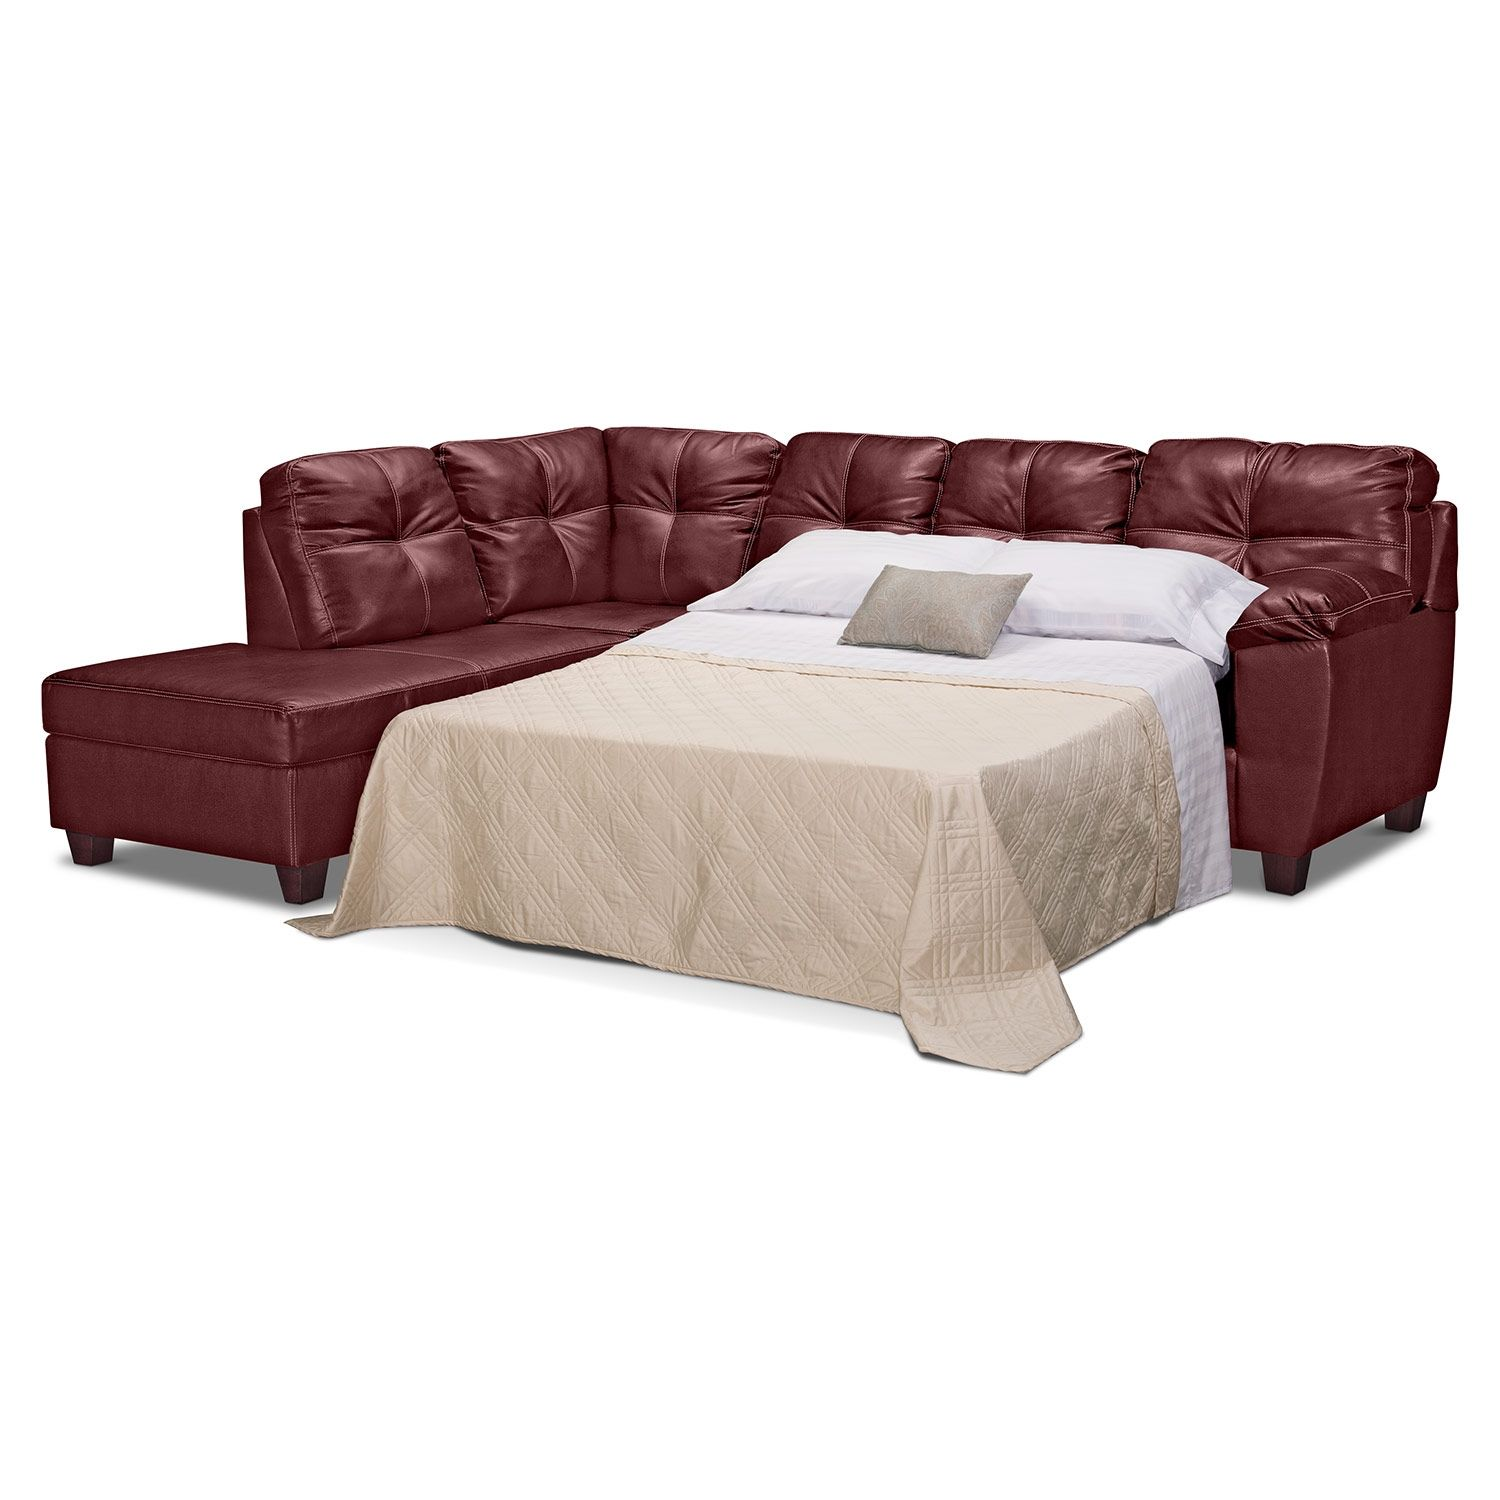 Sleeper Sofa For Marvellous Sectional Living Room Bed Ansugallerycom Beds Small Es